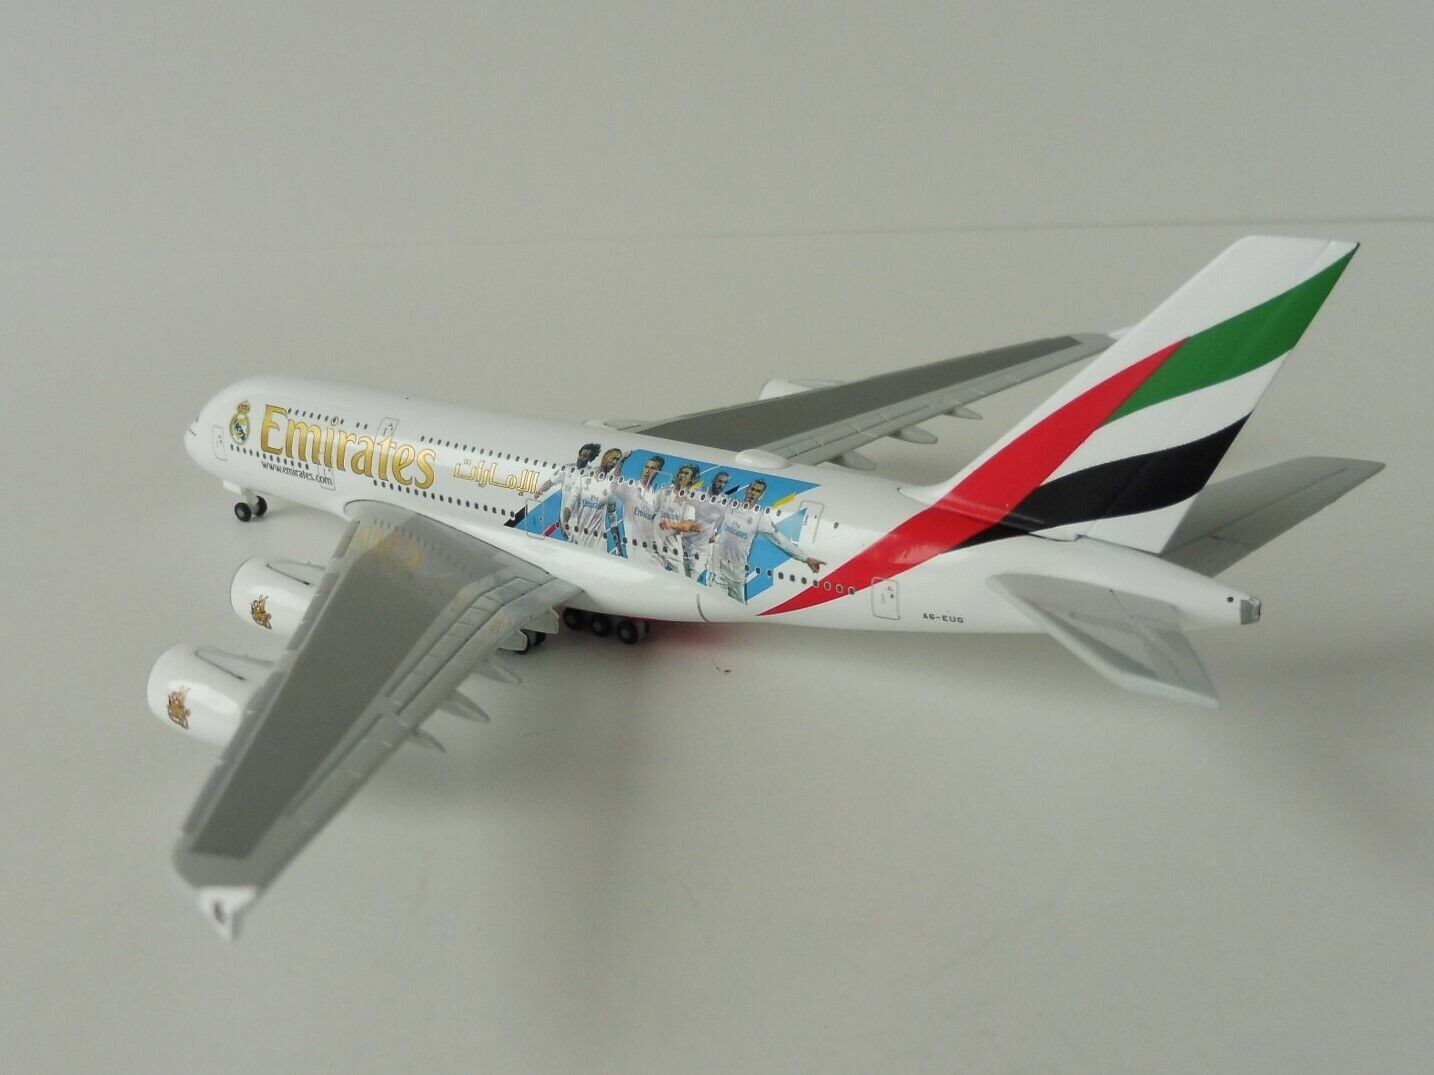 Emirates Airbus A380-800 Real Madrid 1 500 Herpa 531931 a 380 A380 A6-eug